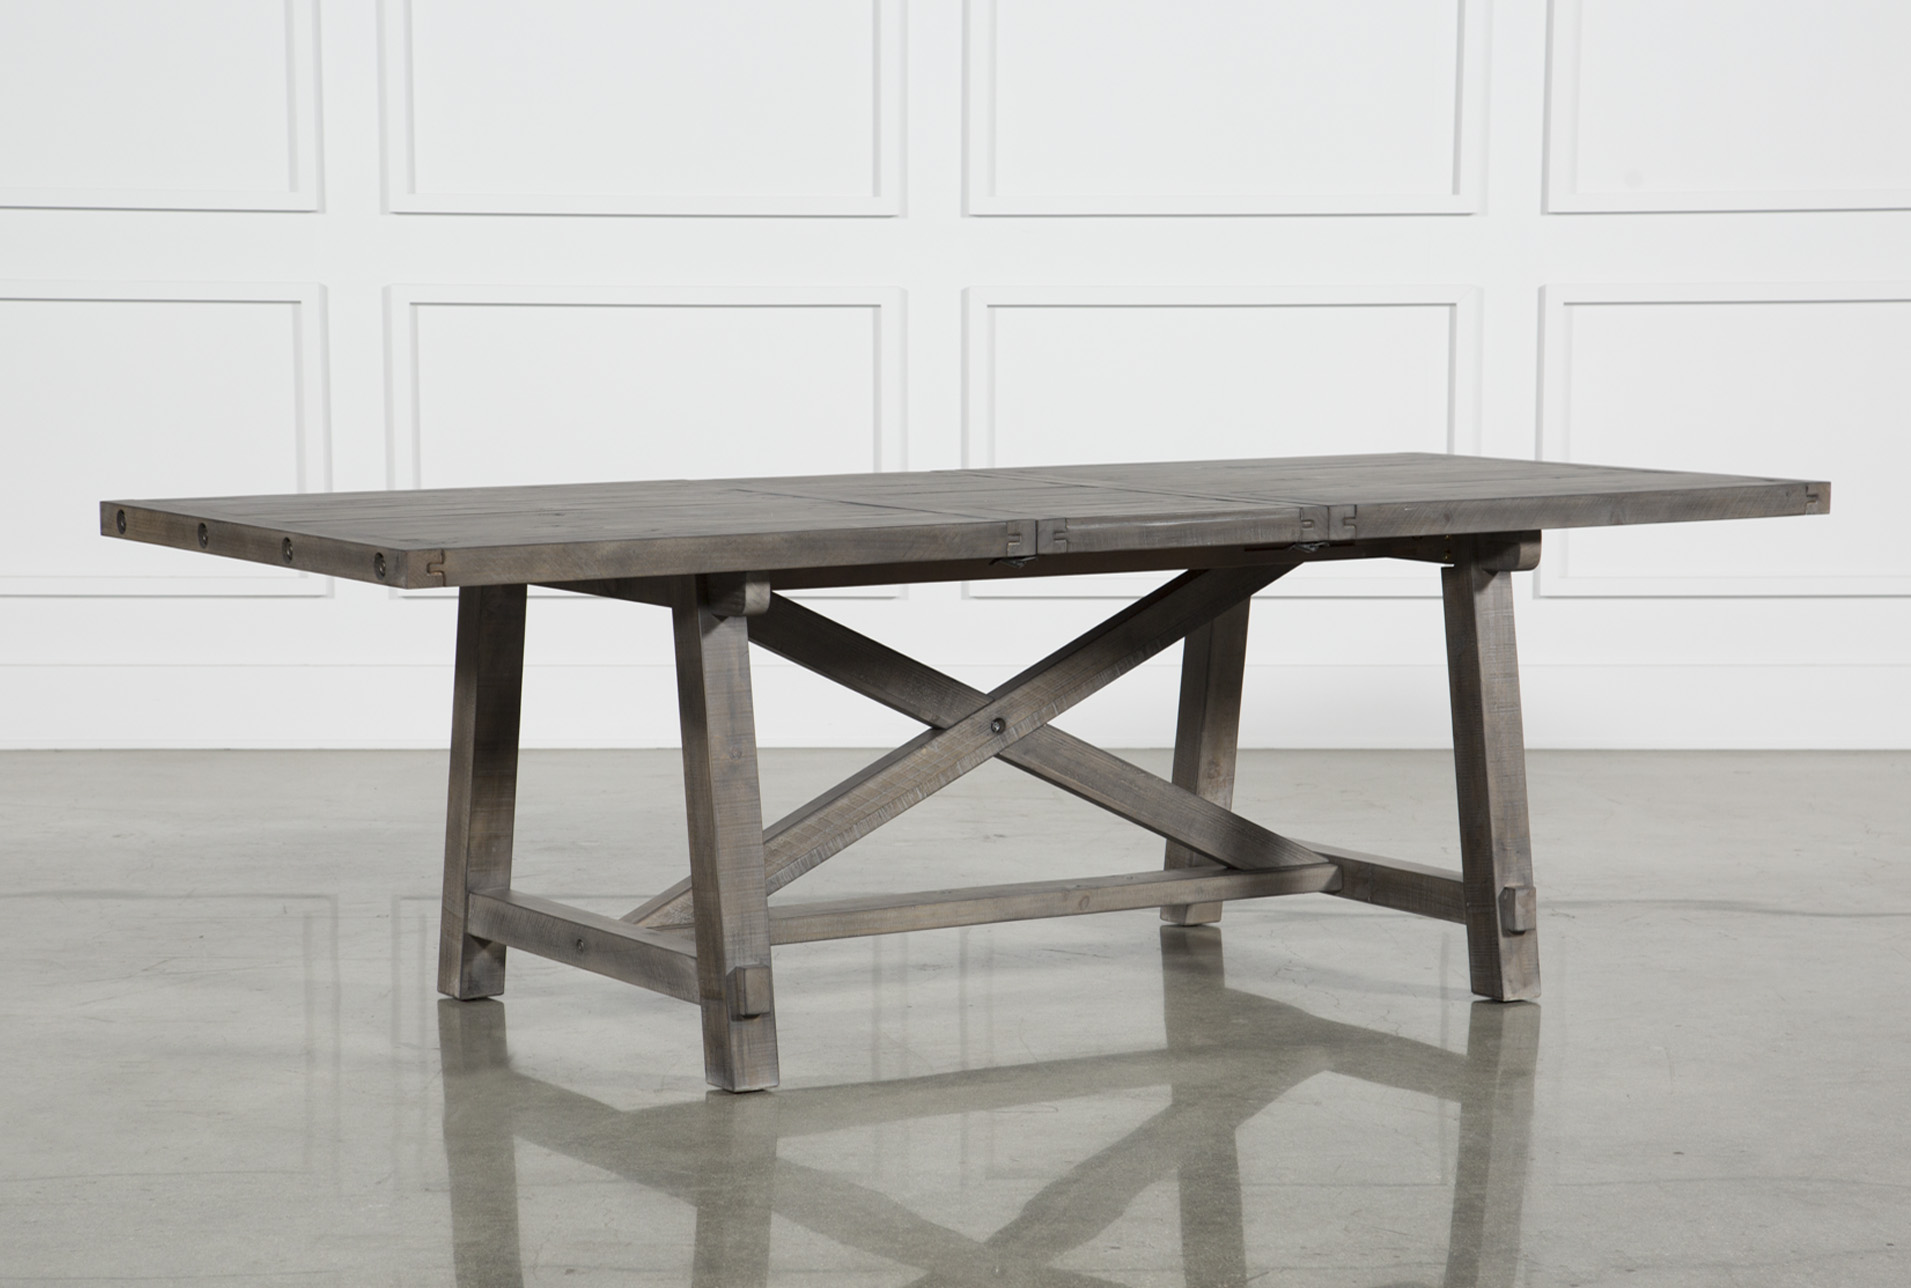 Charmant Jaxon Grey Rectangle Extension Dining Table (Qty: 1) Has Been Successfully  Added To Your Cart.